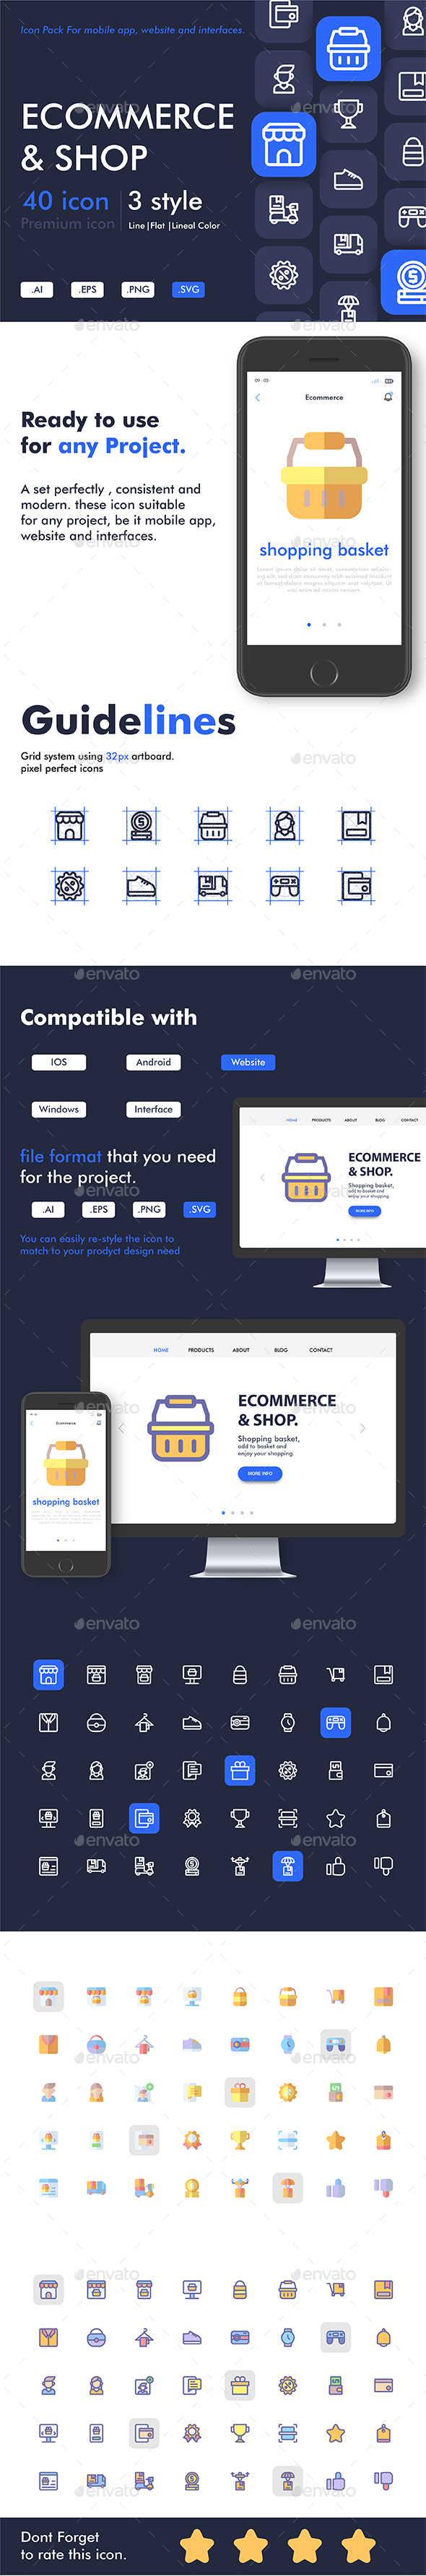 Ecommerce and Shop icon pack